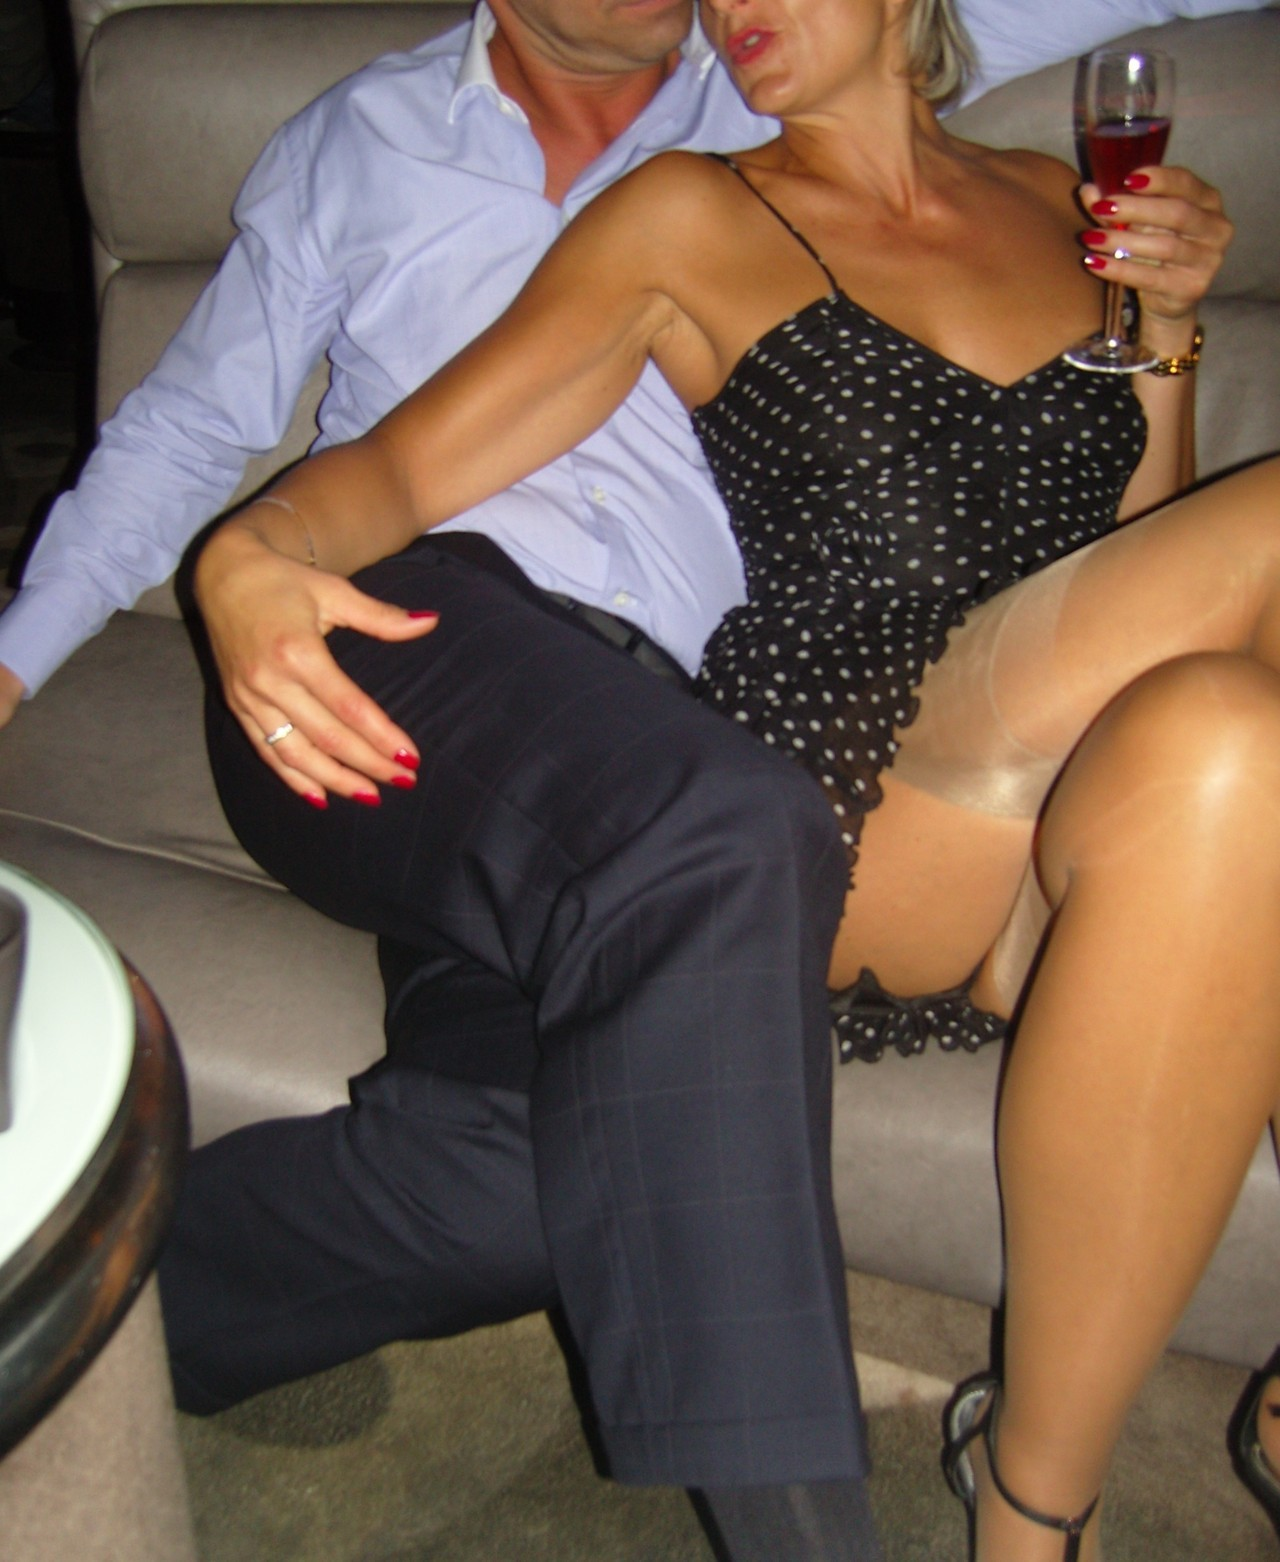 clubbing wife with another man